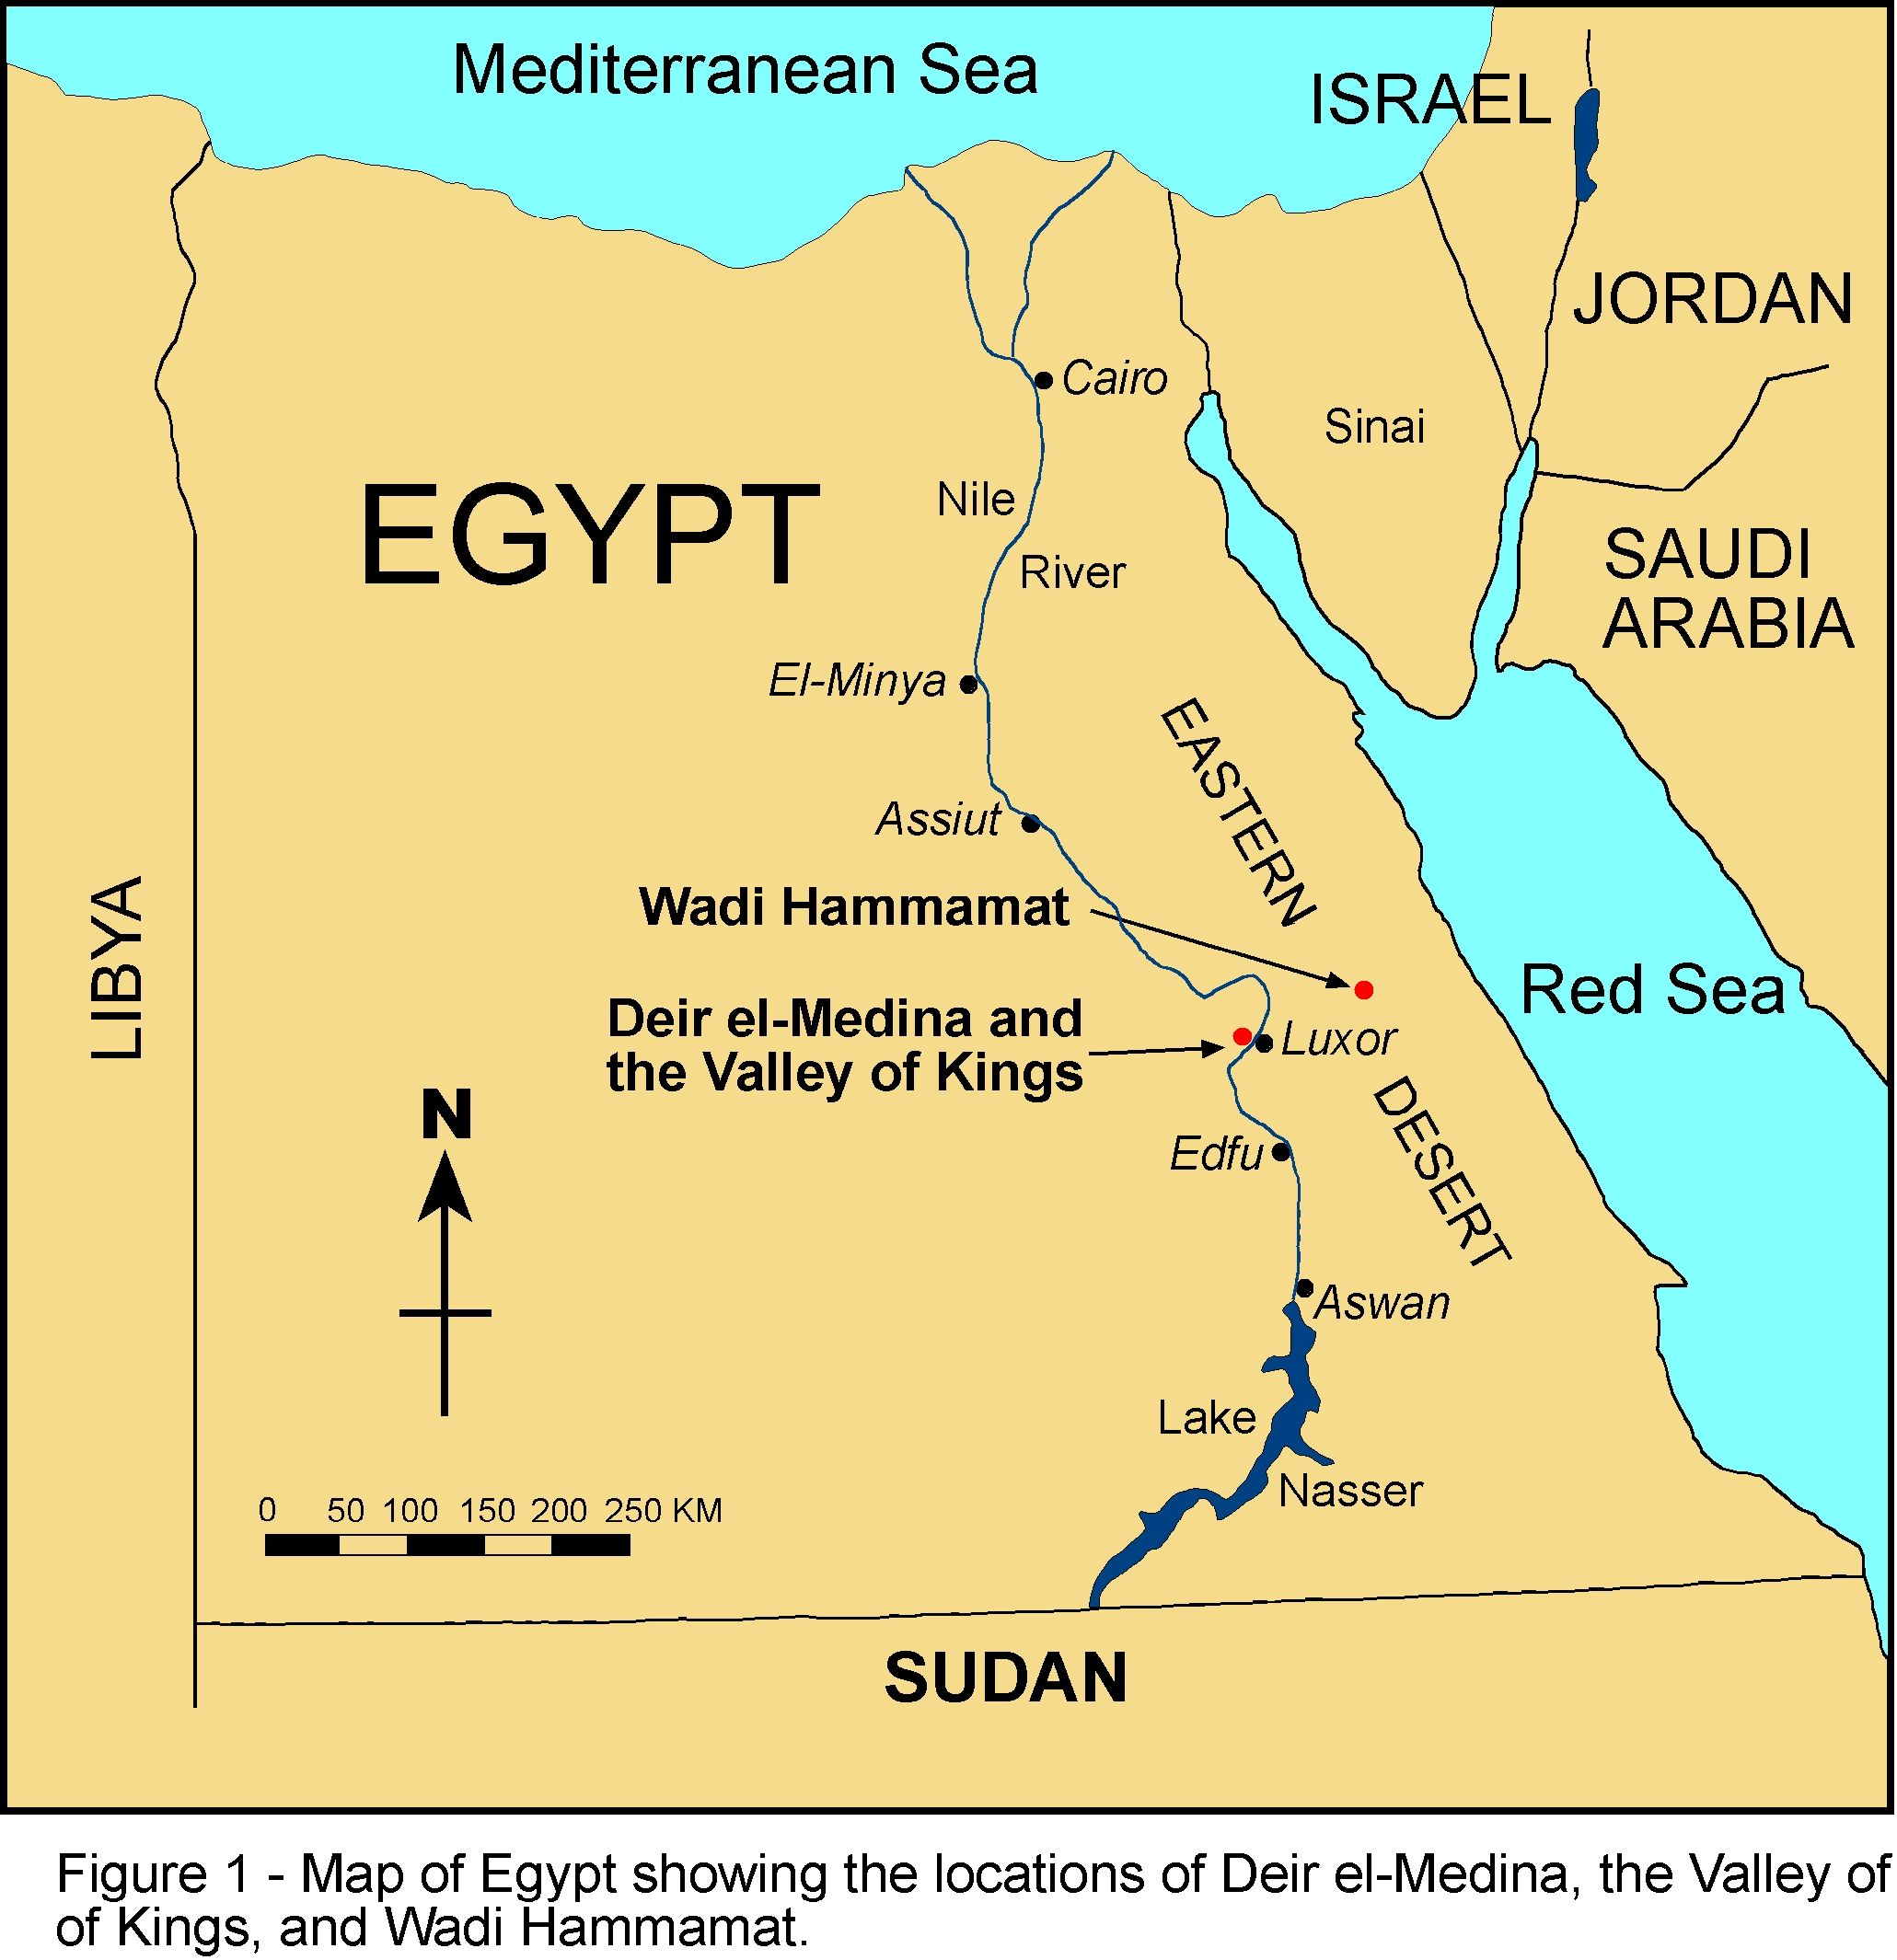 egypt map  Large based map of Egypt Egypt large based map